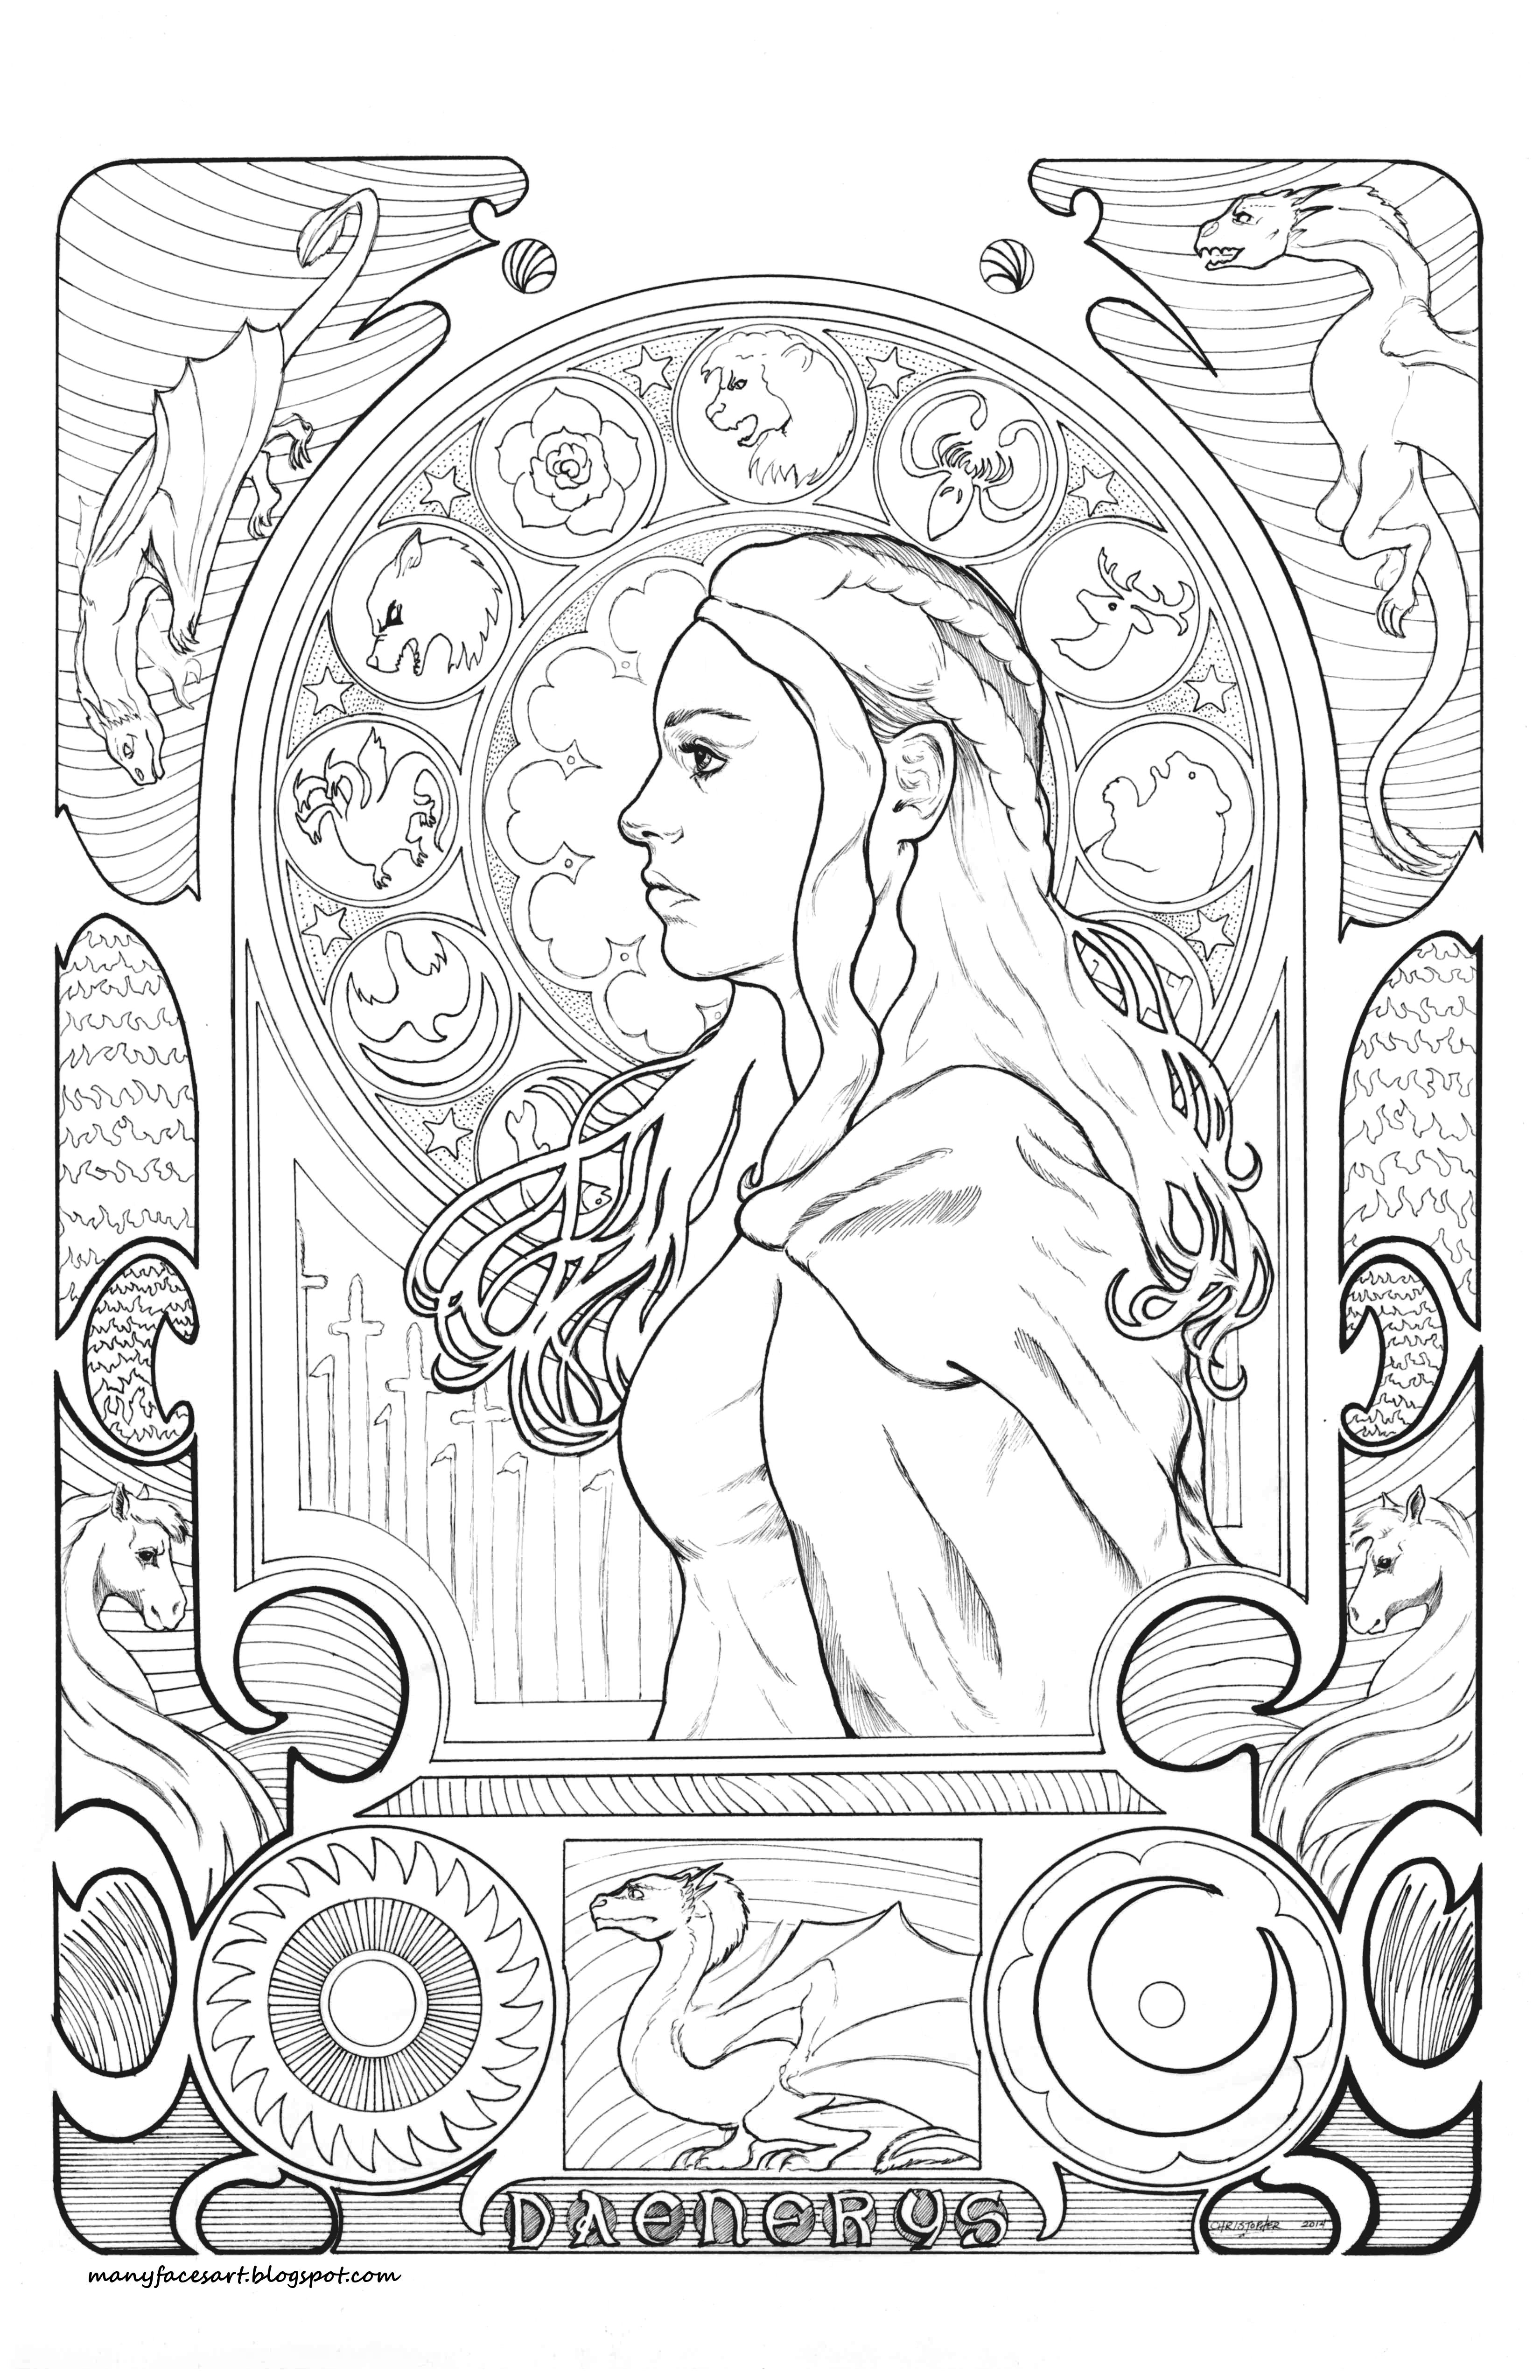 My Art Nouveau Game Of Thrones Inspired Image Of Danaerys Targaryen Coloring Books Mandala Coloring Books Coloring Pages